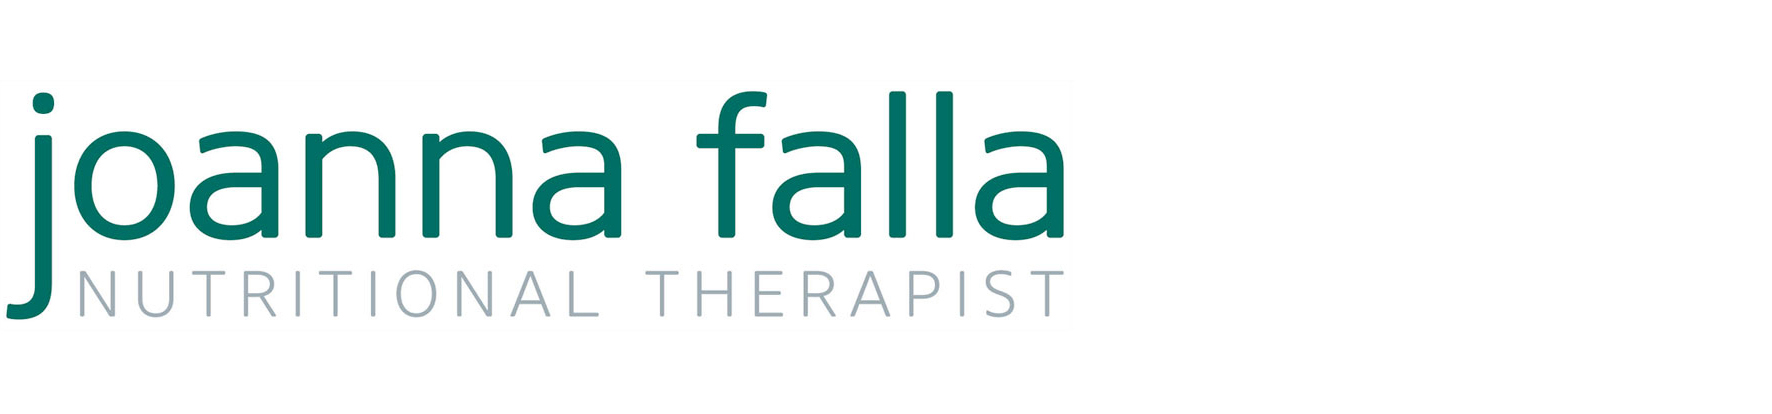 Joanna Falla – Nutritional Therapist Logo